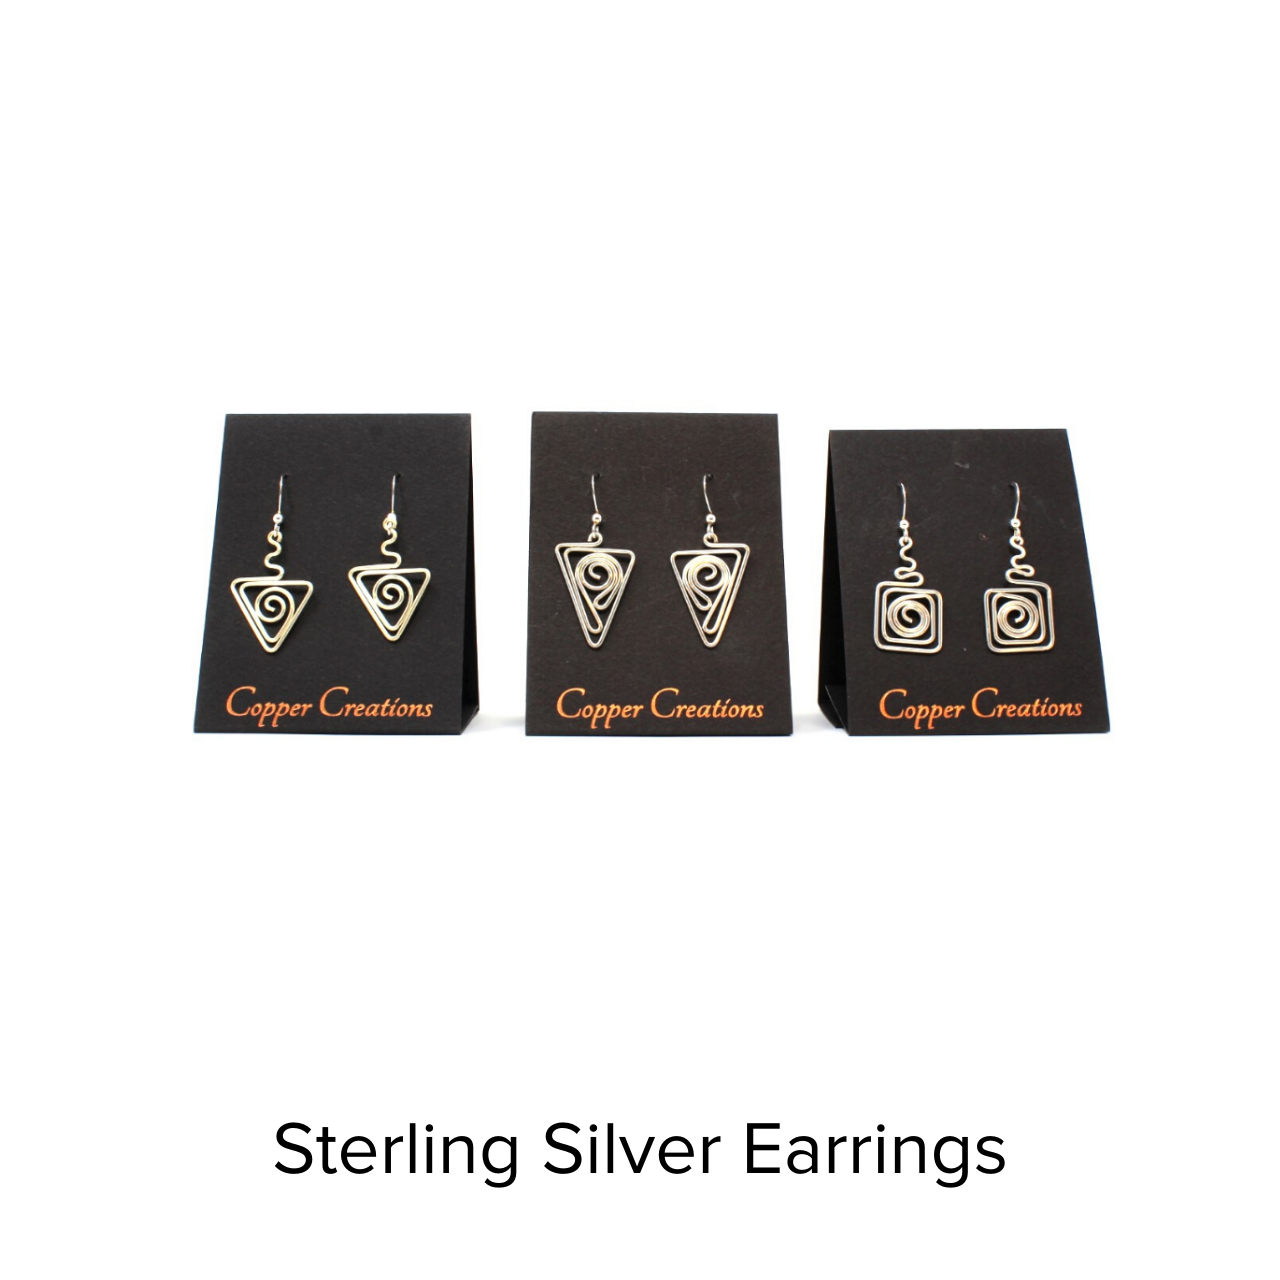 Copper Creations Sterling Silver Earrings